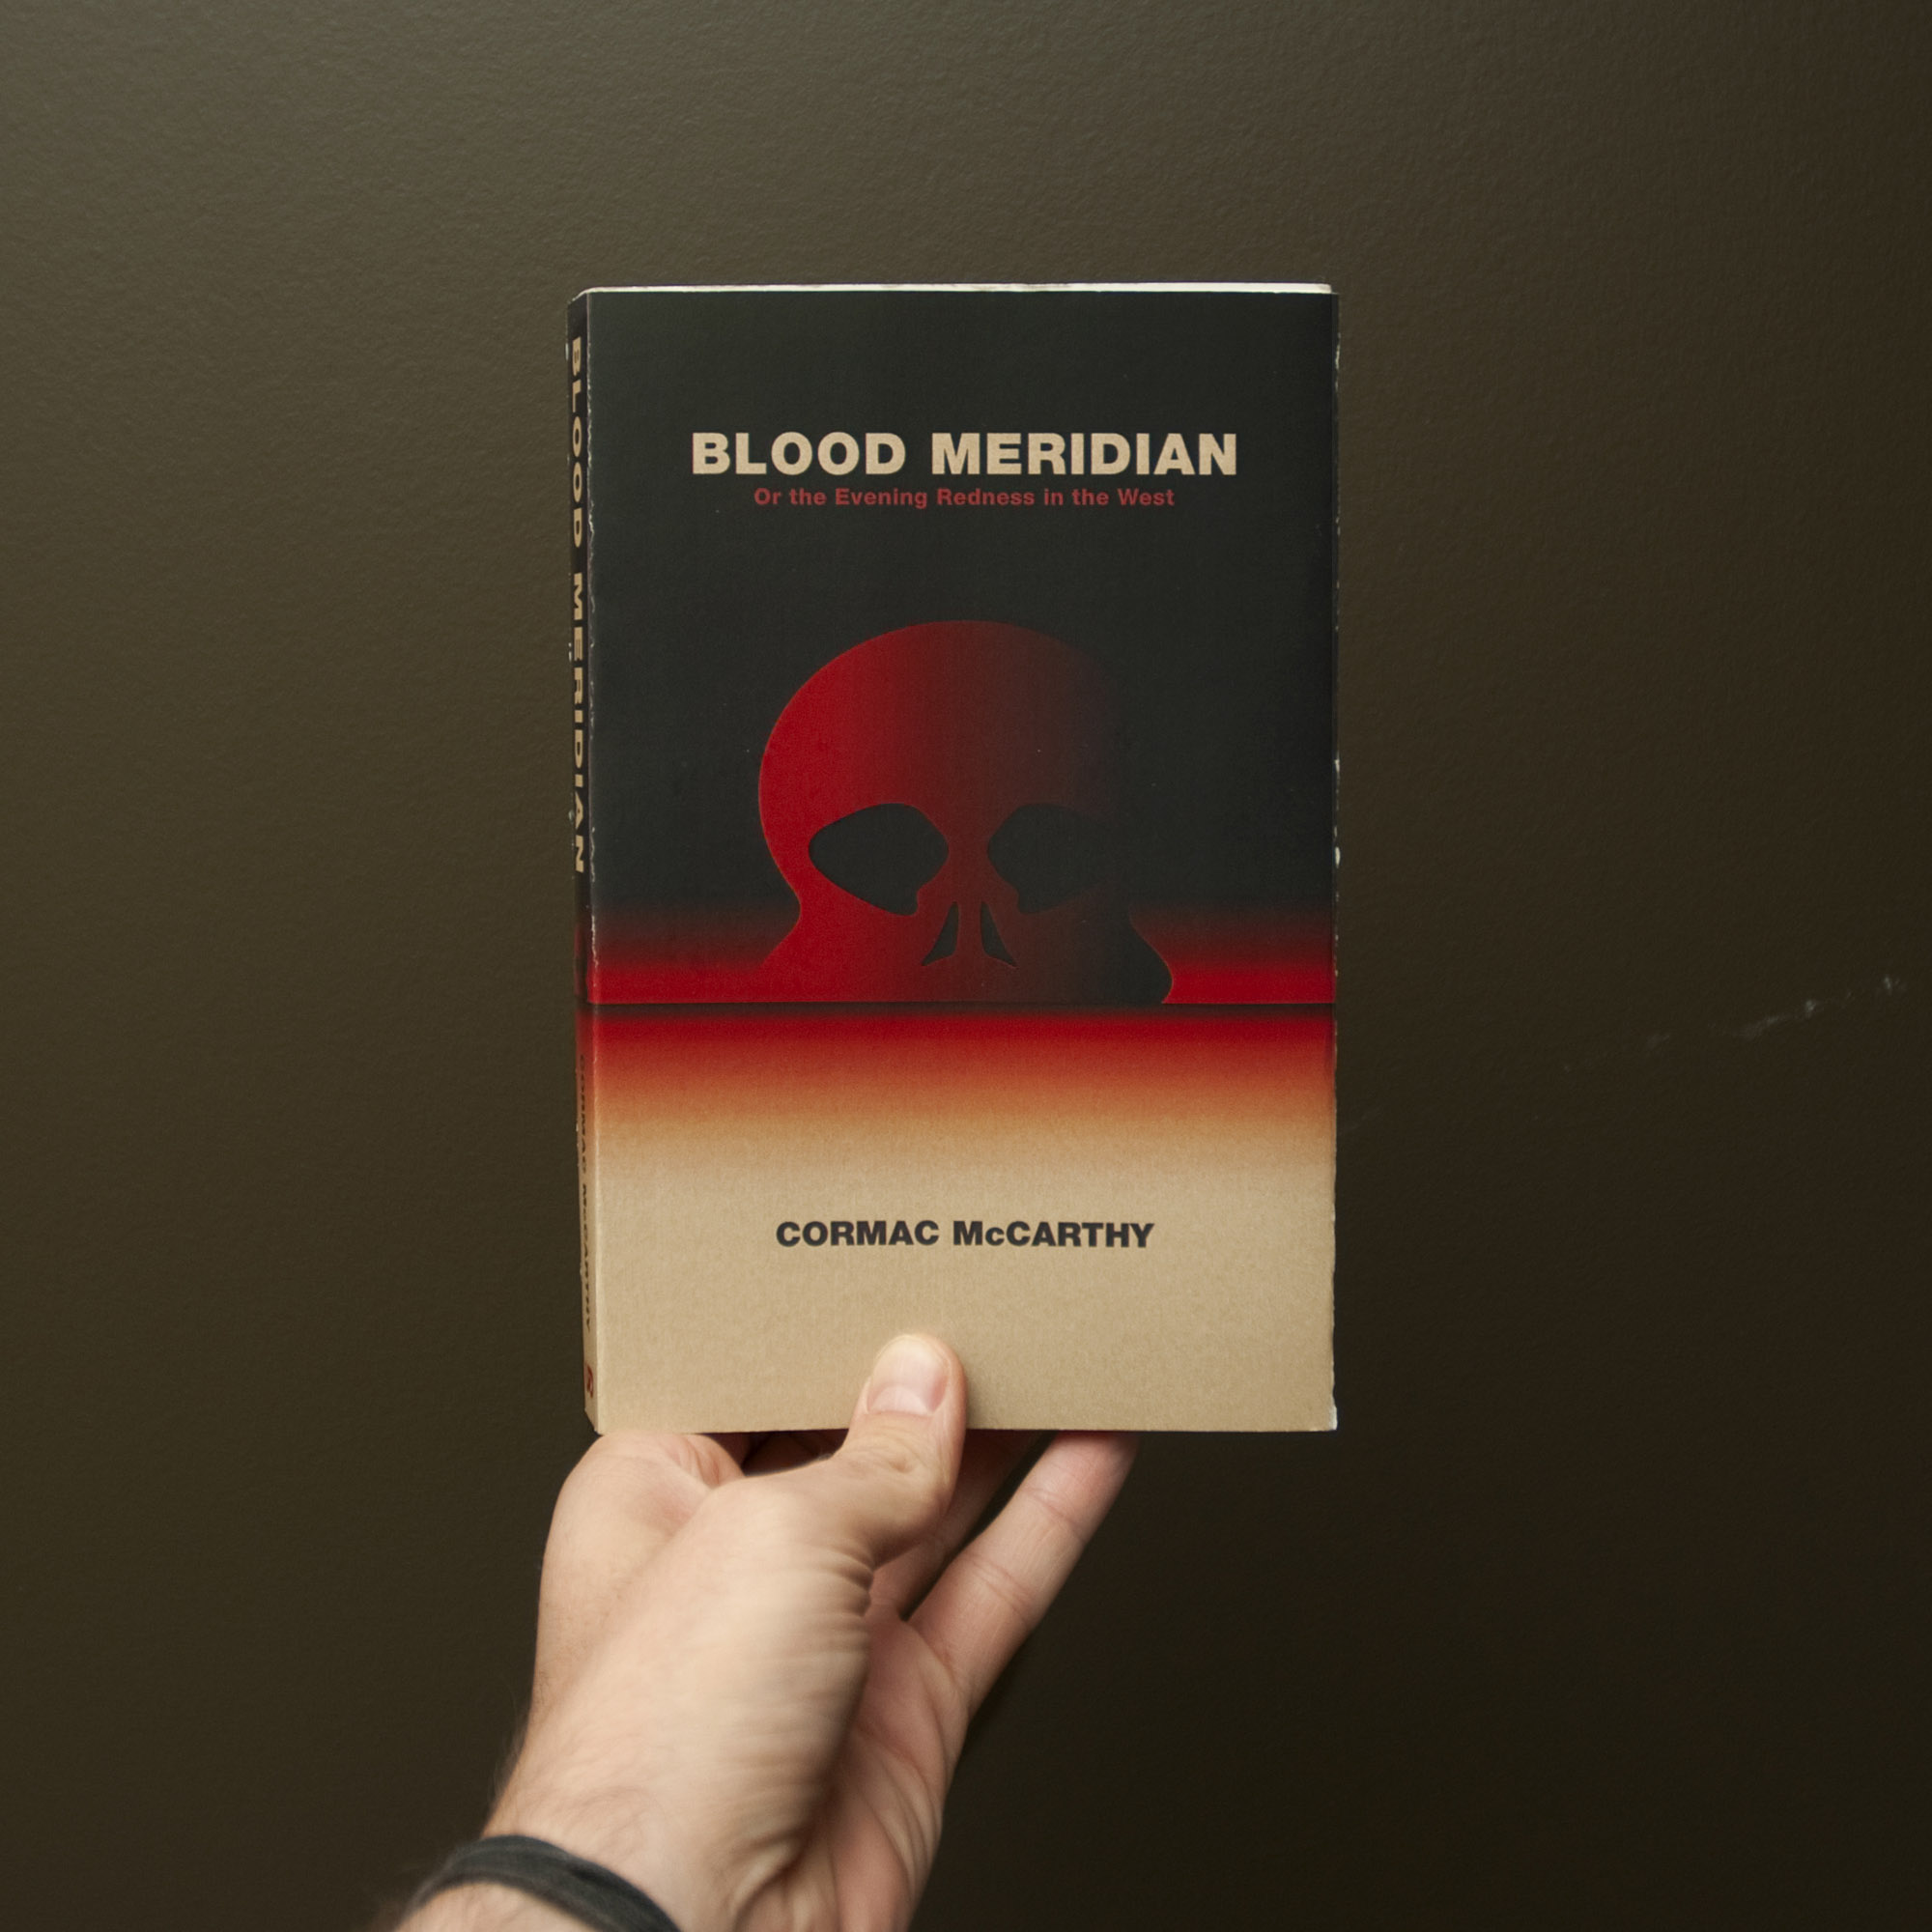 2010365_1207_BloodMeridian-web